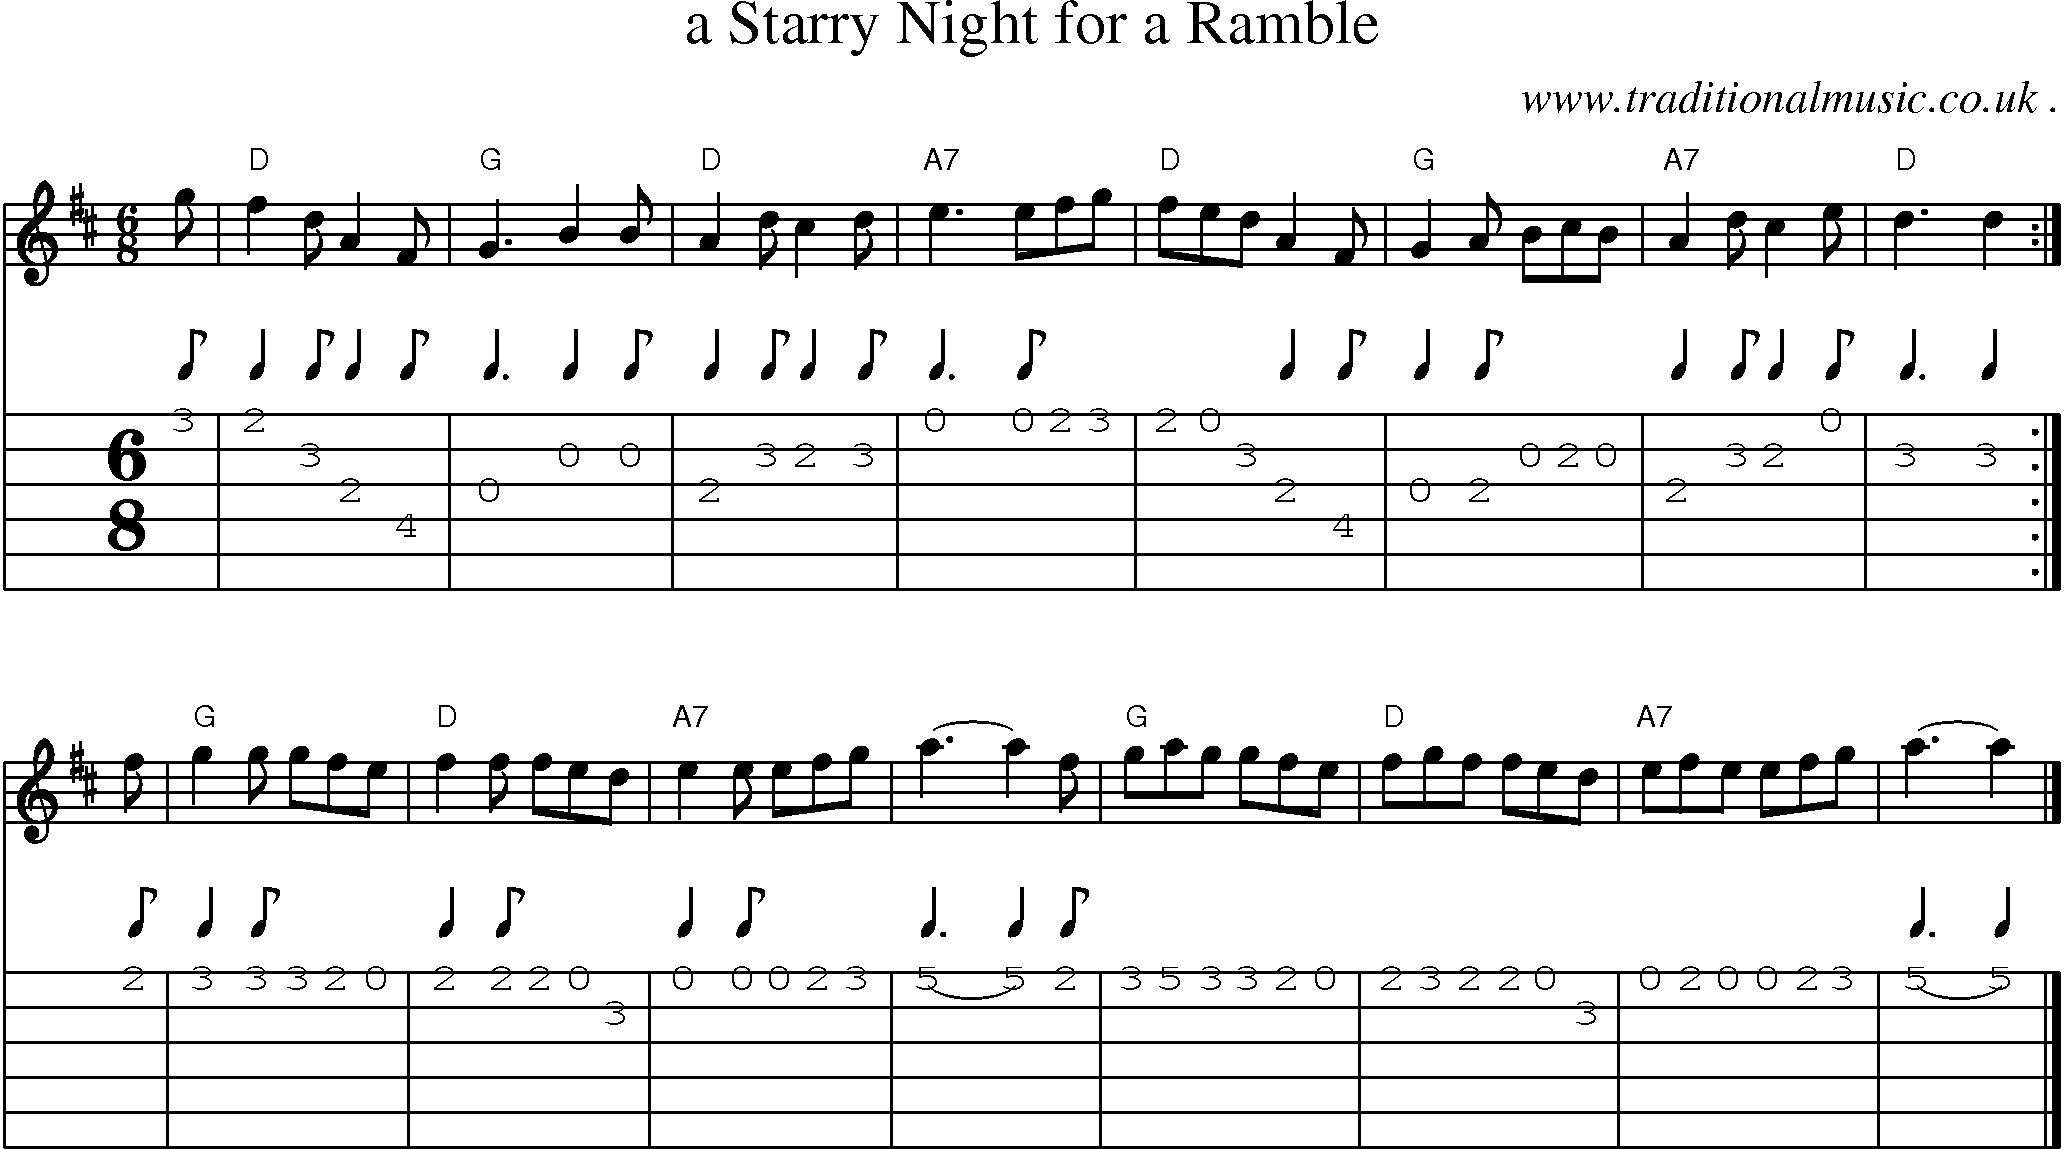 ... -music score, Chords and Guitar Tabs for A Starry Night For A Ramble